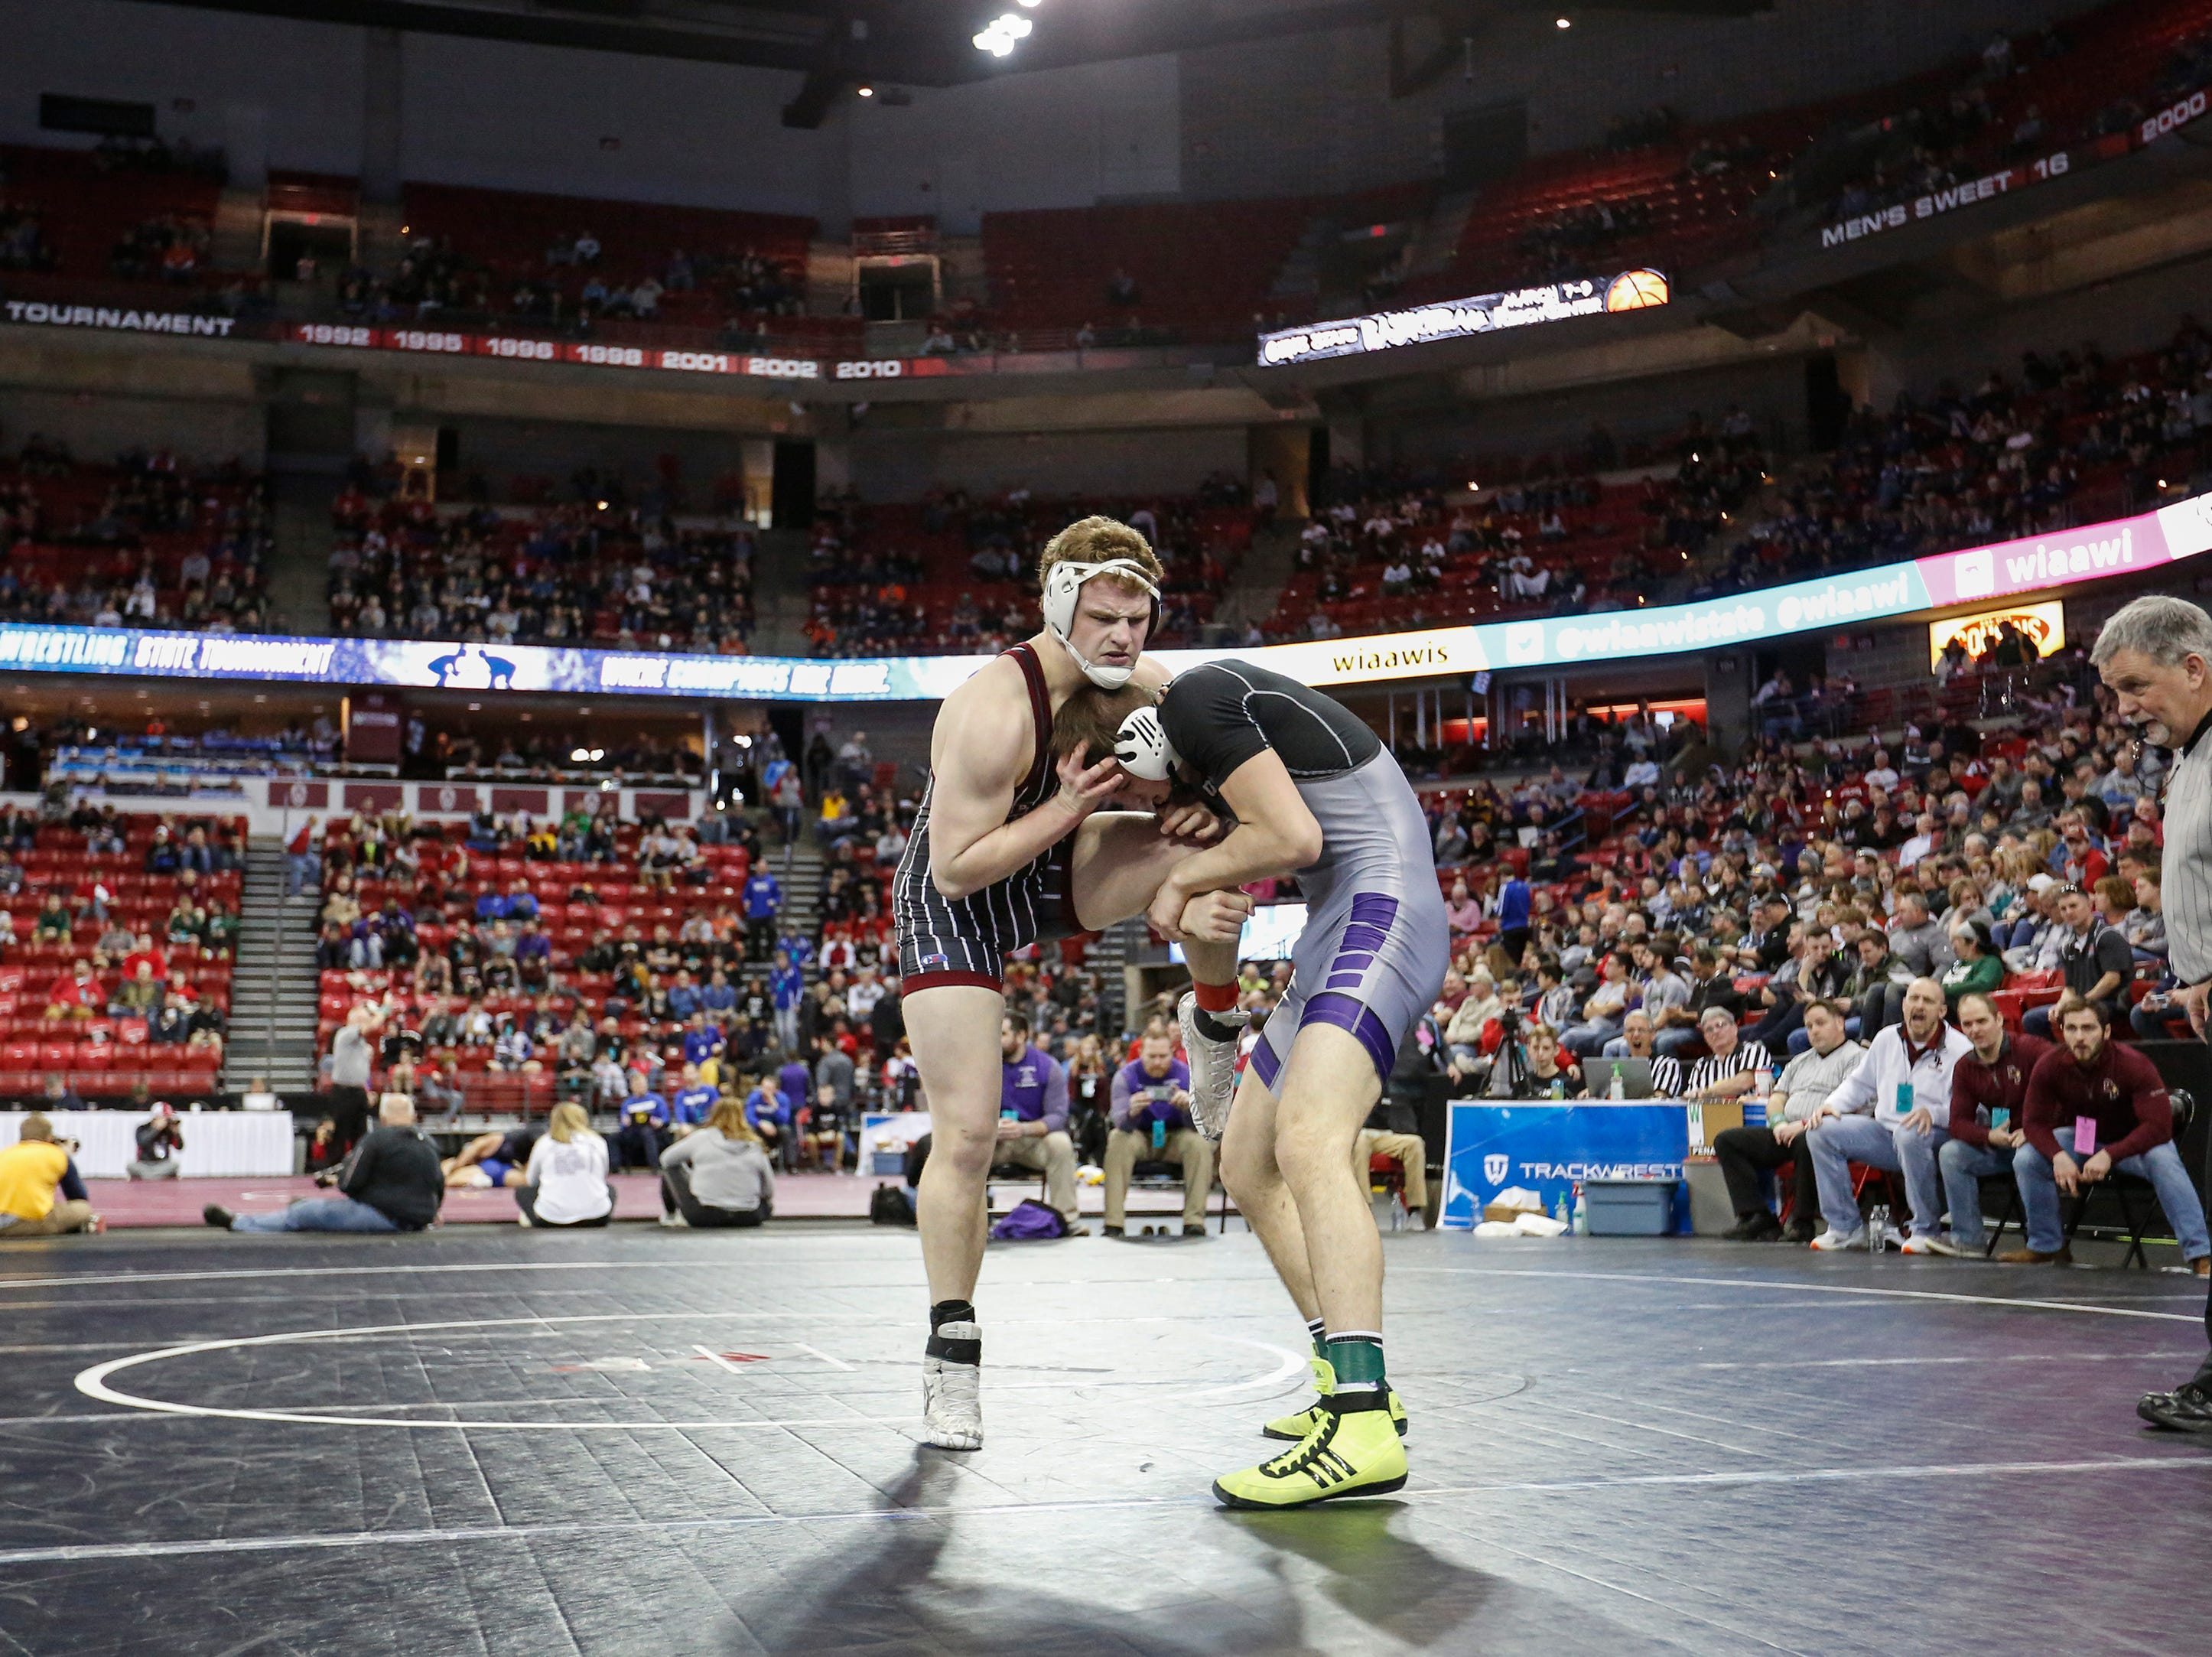 De Pere's Charlie Hooyman wrestles Beloit Memorial's Tyler Sireci in a Division 1 195-pound weight class preliminary match during the WIAA state individual wrestling tournament at the Kohl Center Thursday, February 21, 2019, in Madison, Wis.